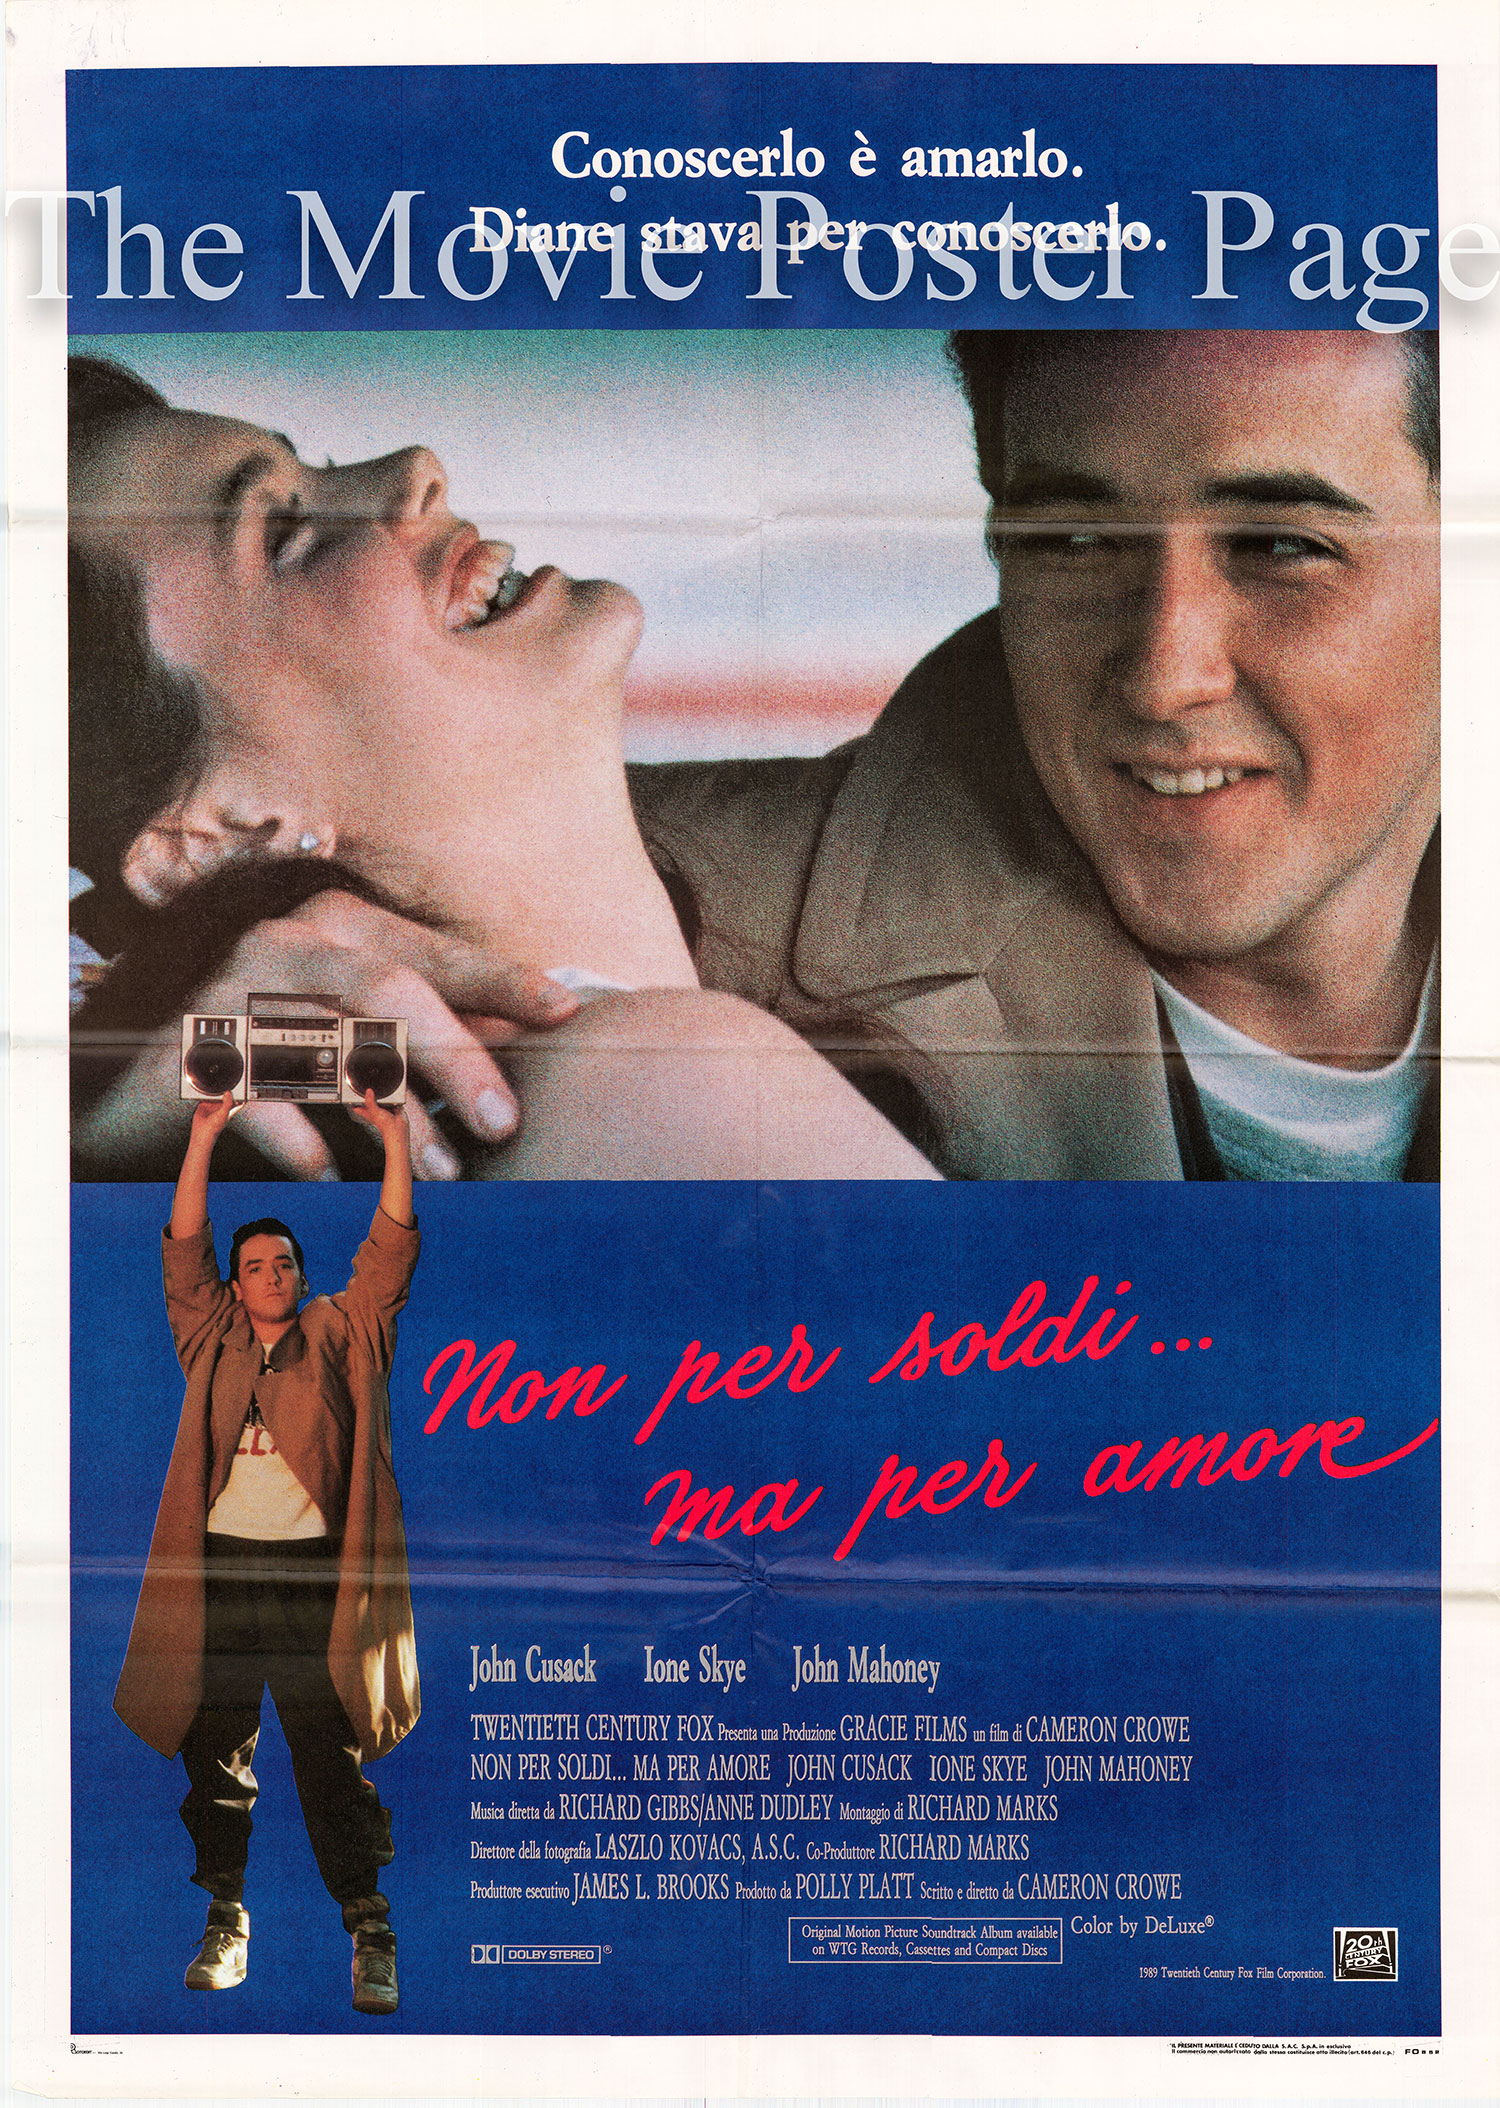 Pictured is an Italian two-sheet poster for the 1989 Cameron Crowe film <i>Say Anything</i> starring John Cusack as Lloyd Dobler.